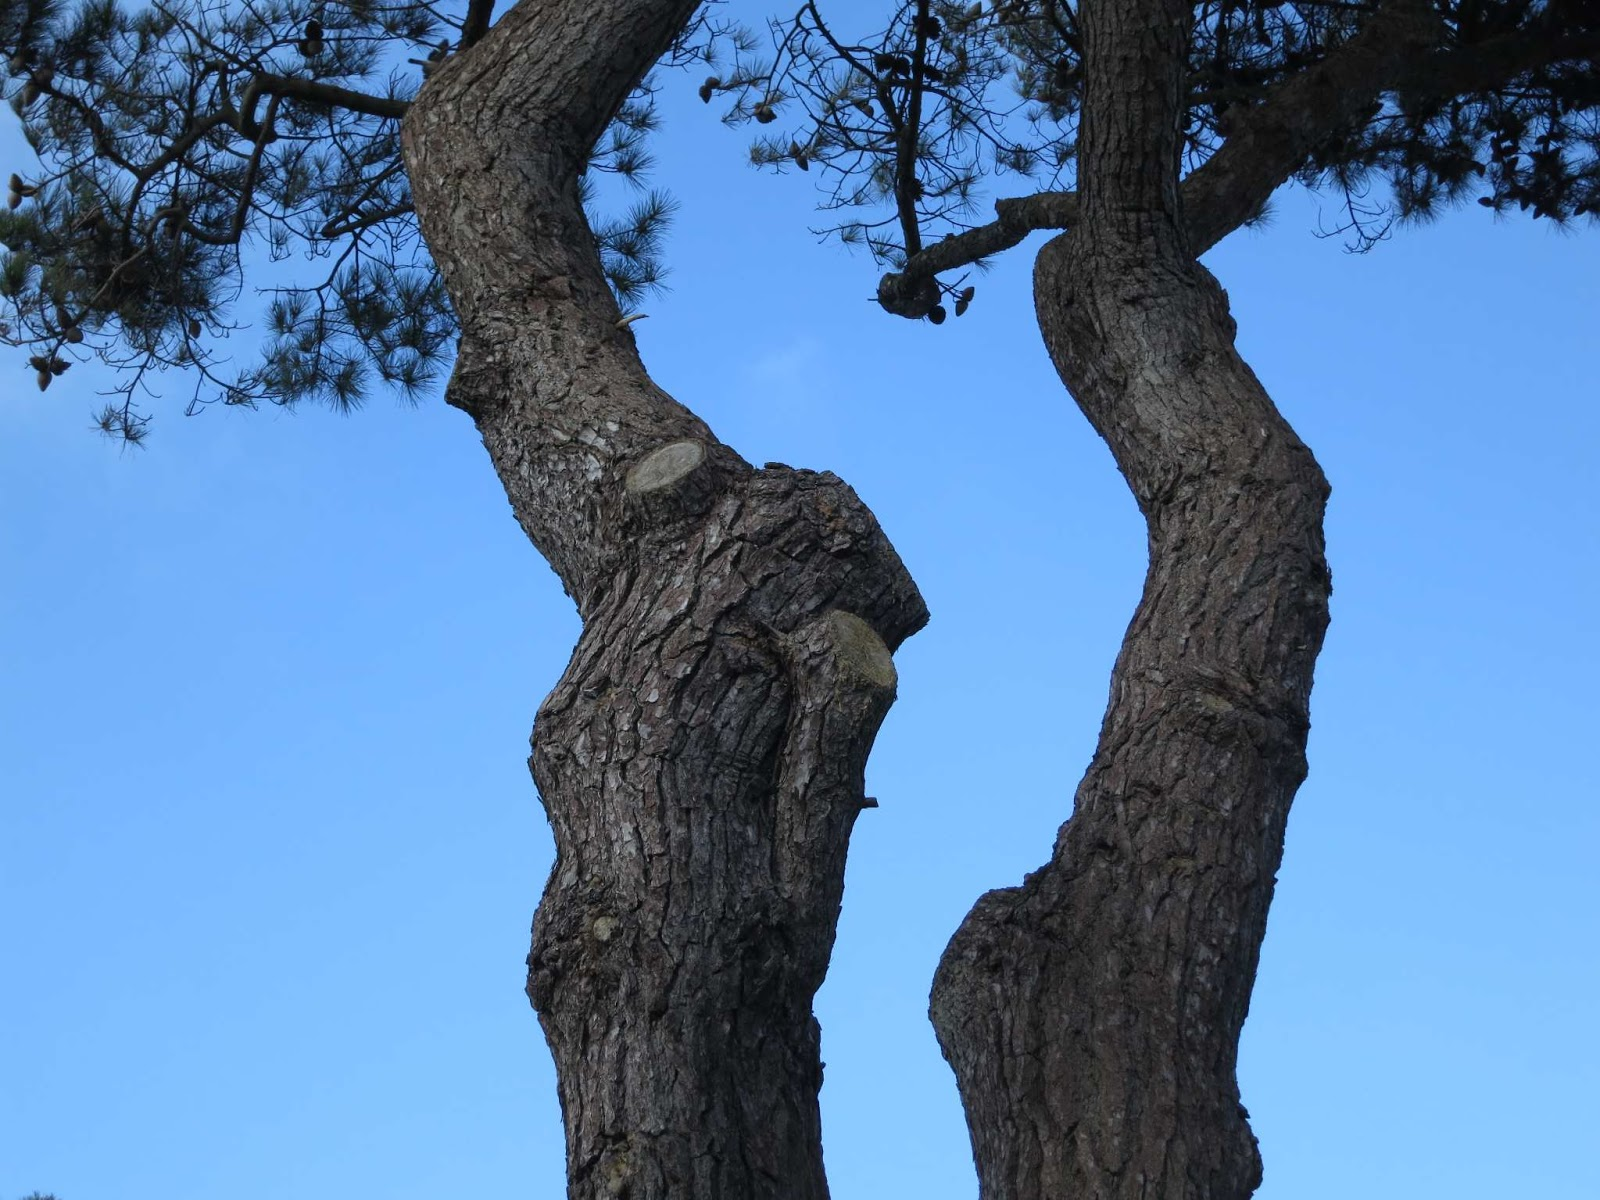 Branched trunks of Monterey Pine